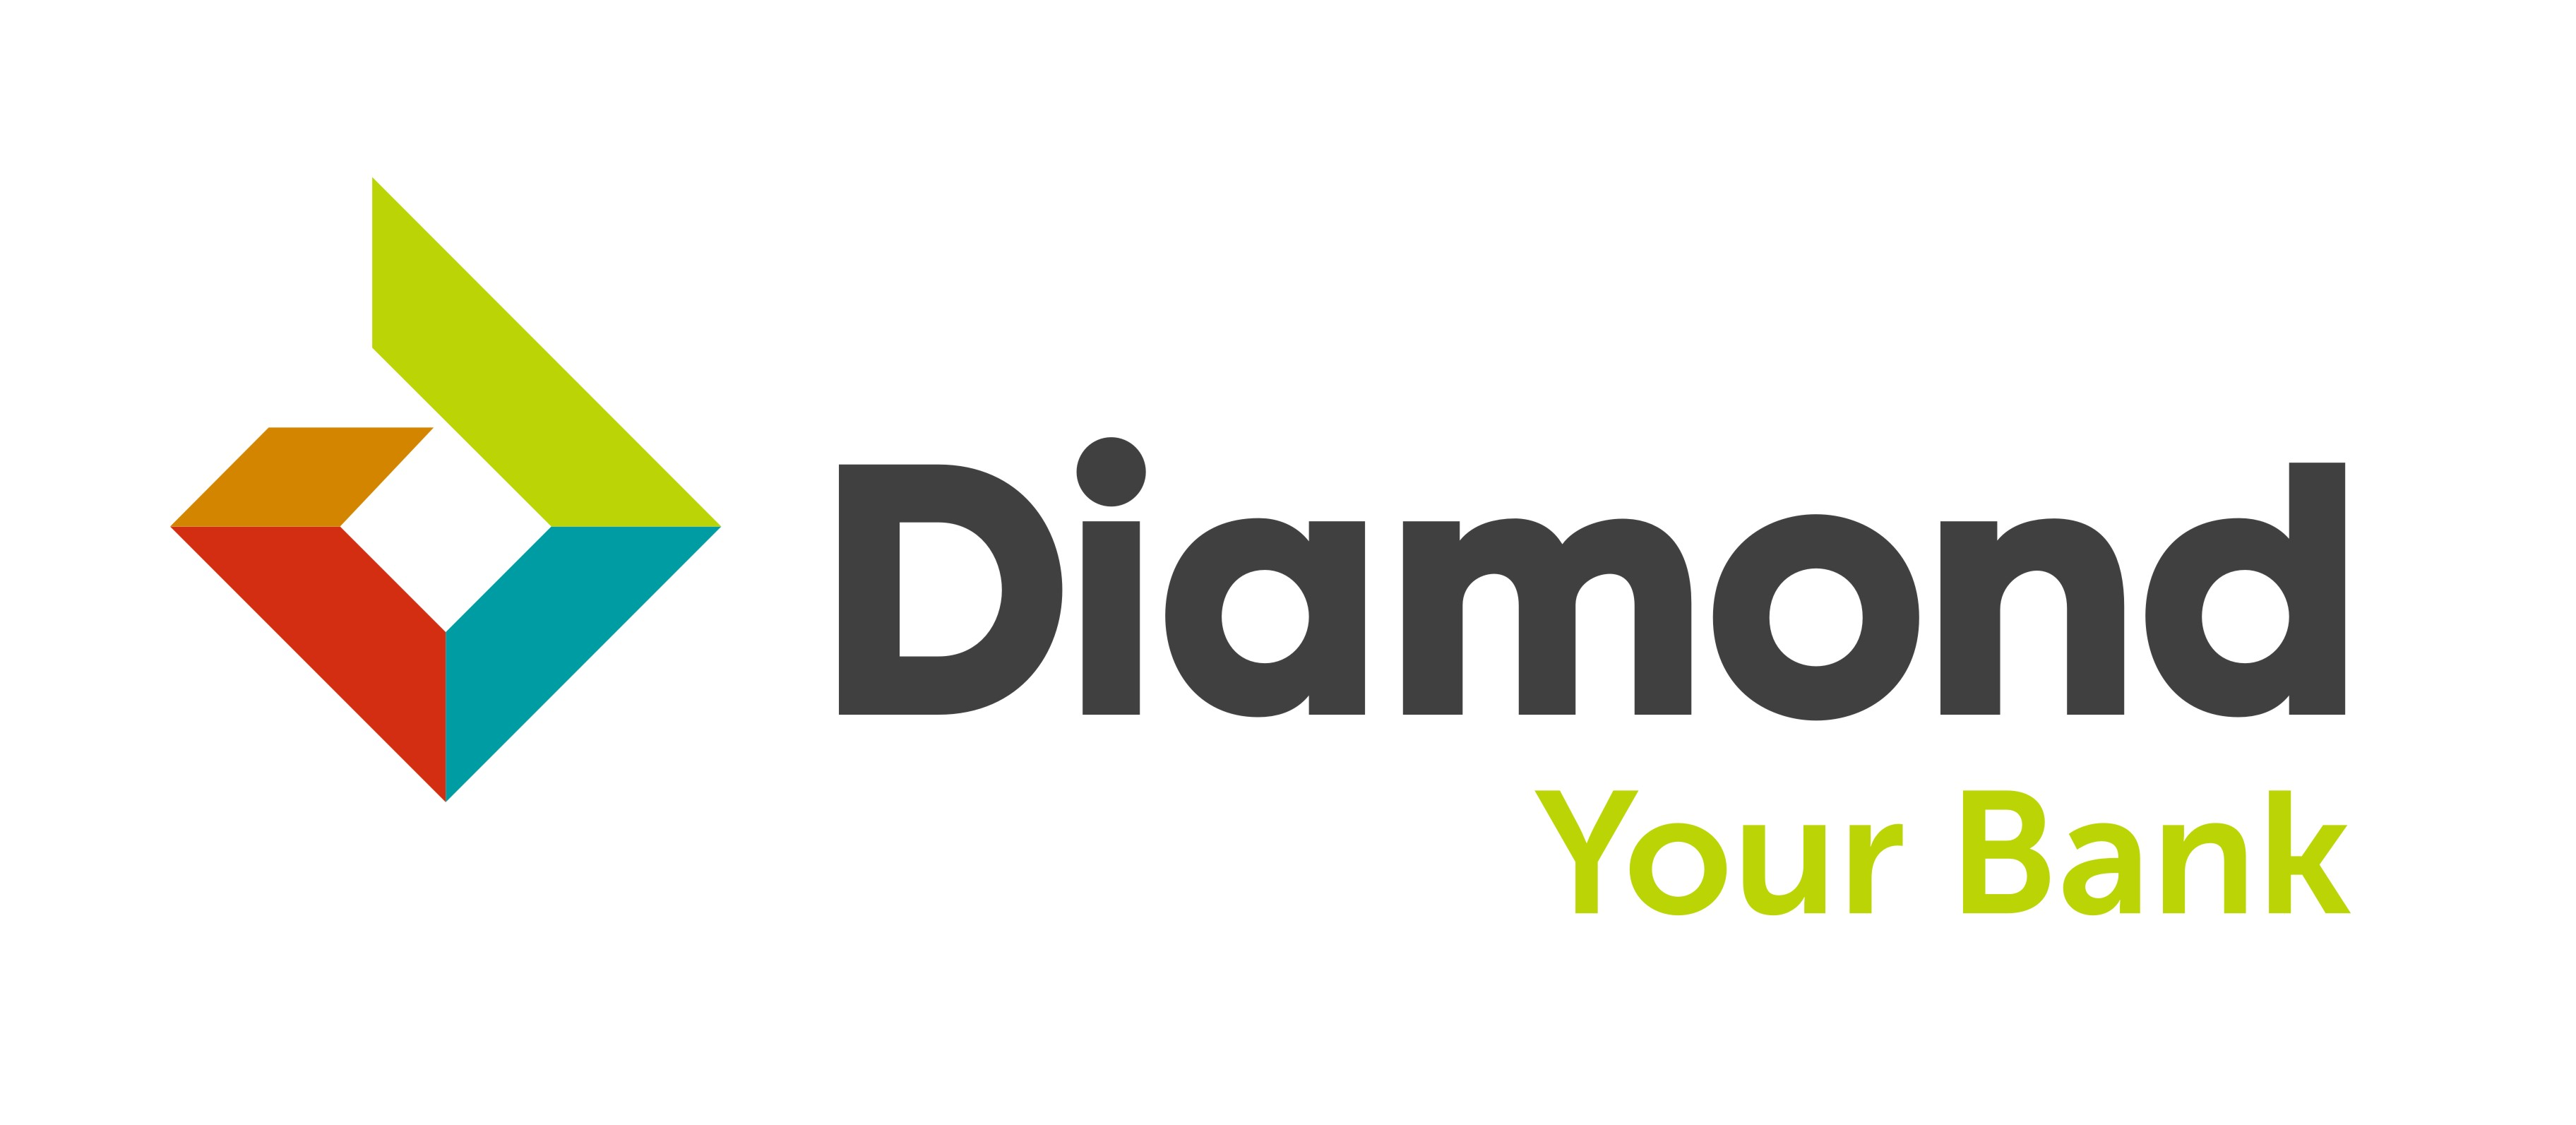 design logo graphic diamond voroneca always